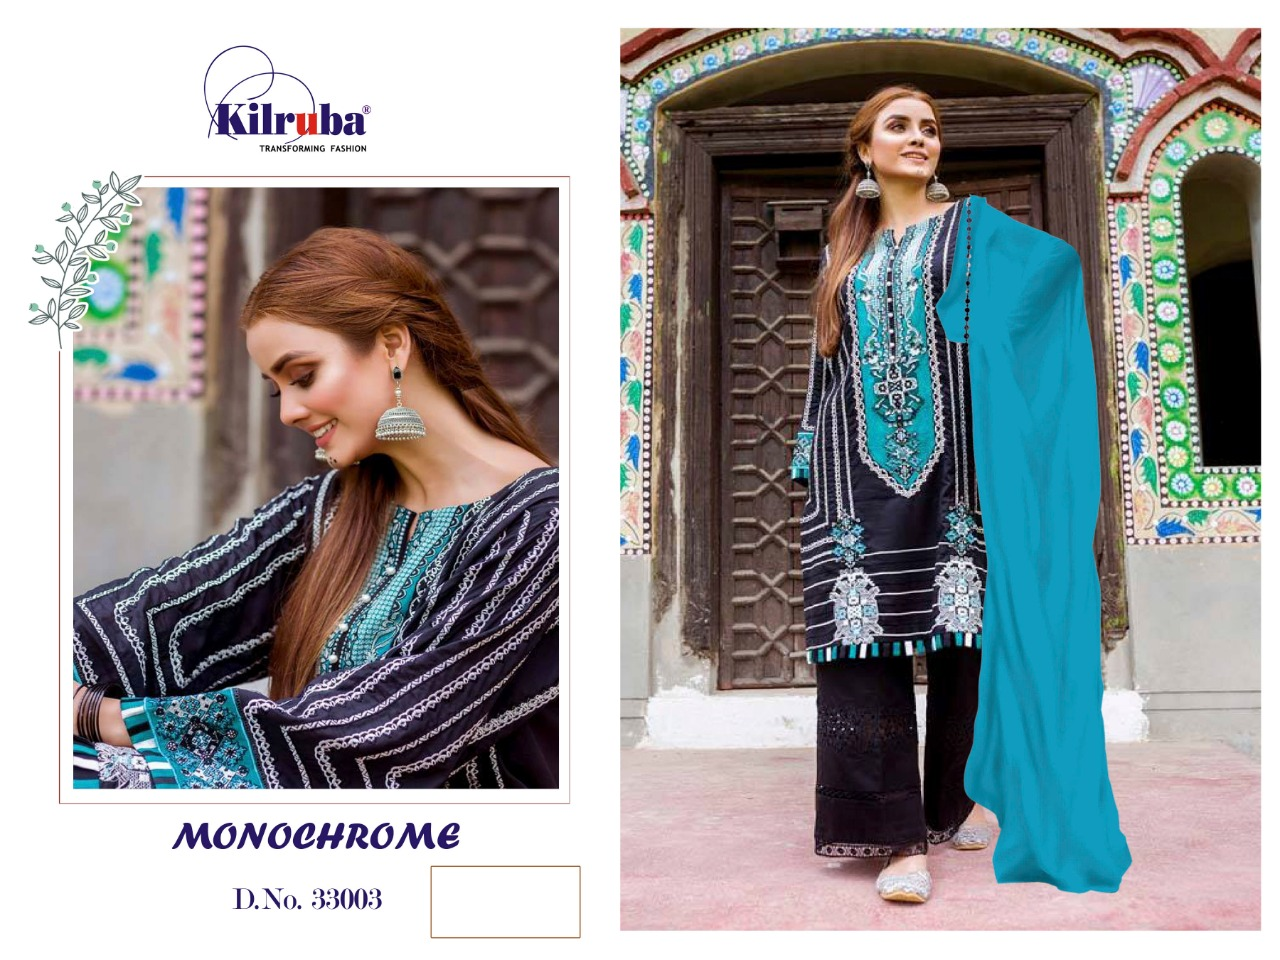 Kilruba Monochrome Stylish Pure Cotton With Embroidery Work Pakistani Suit Catalog at Wholesale rate